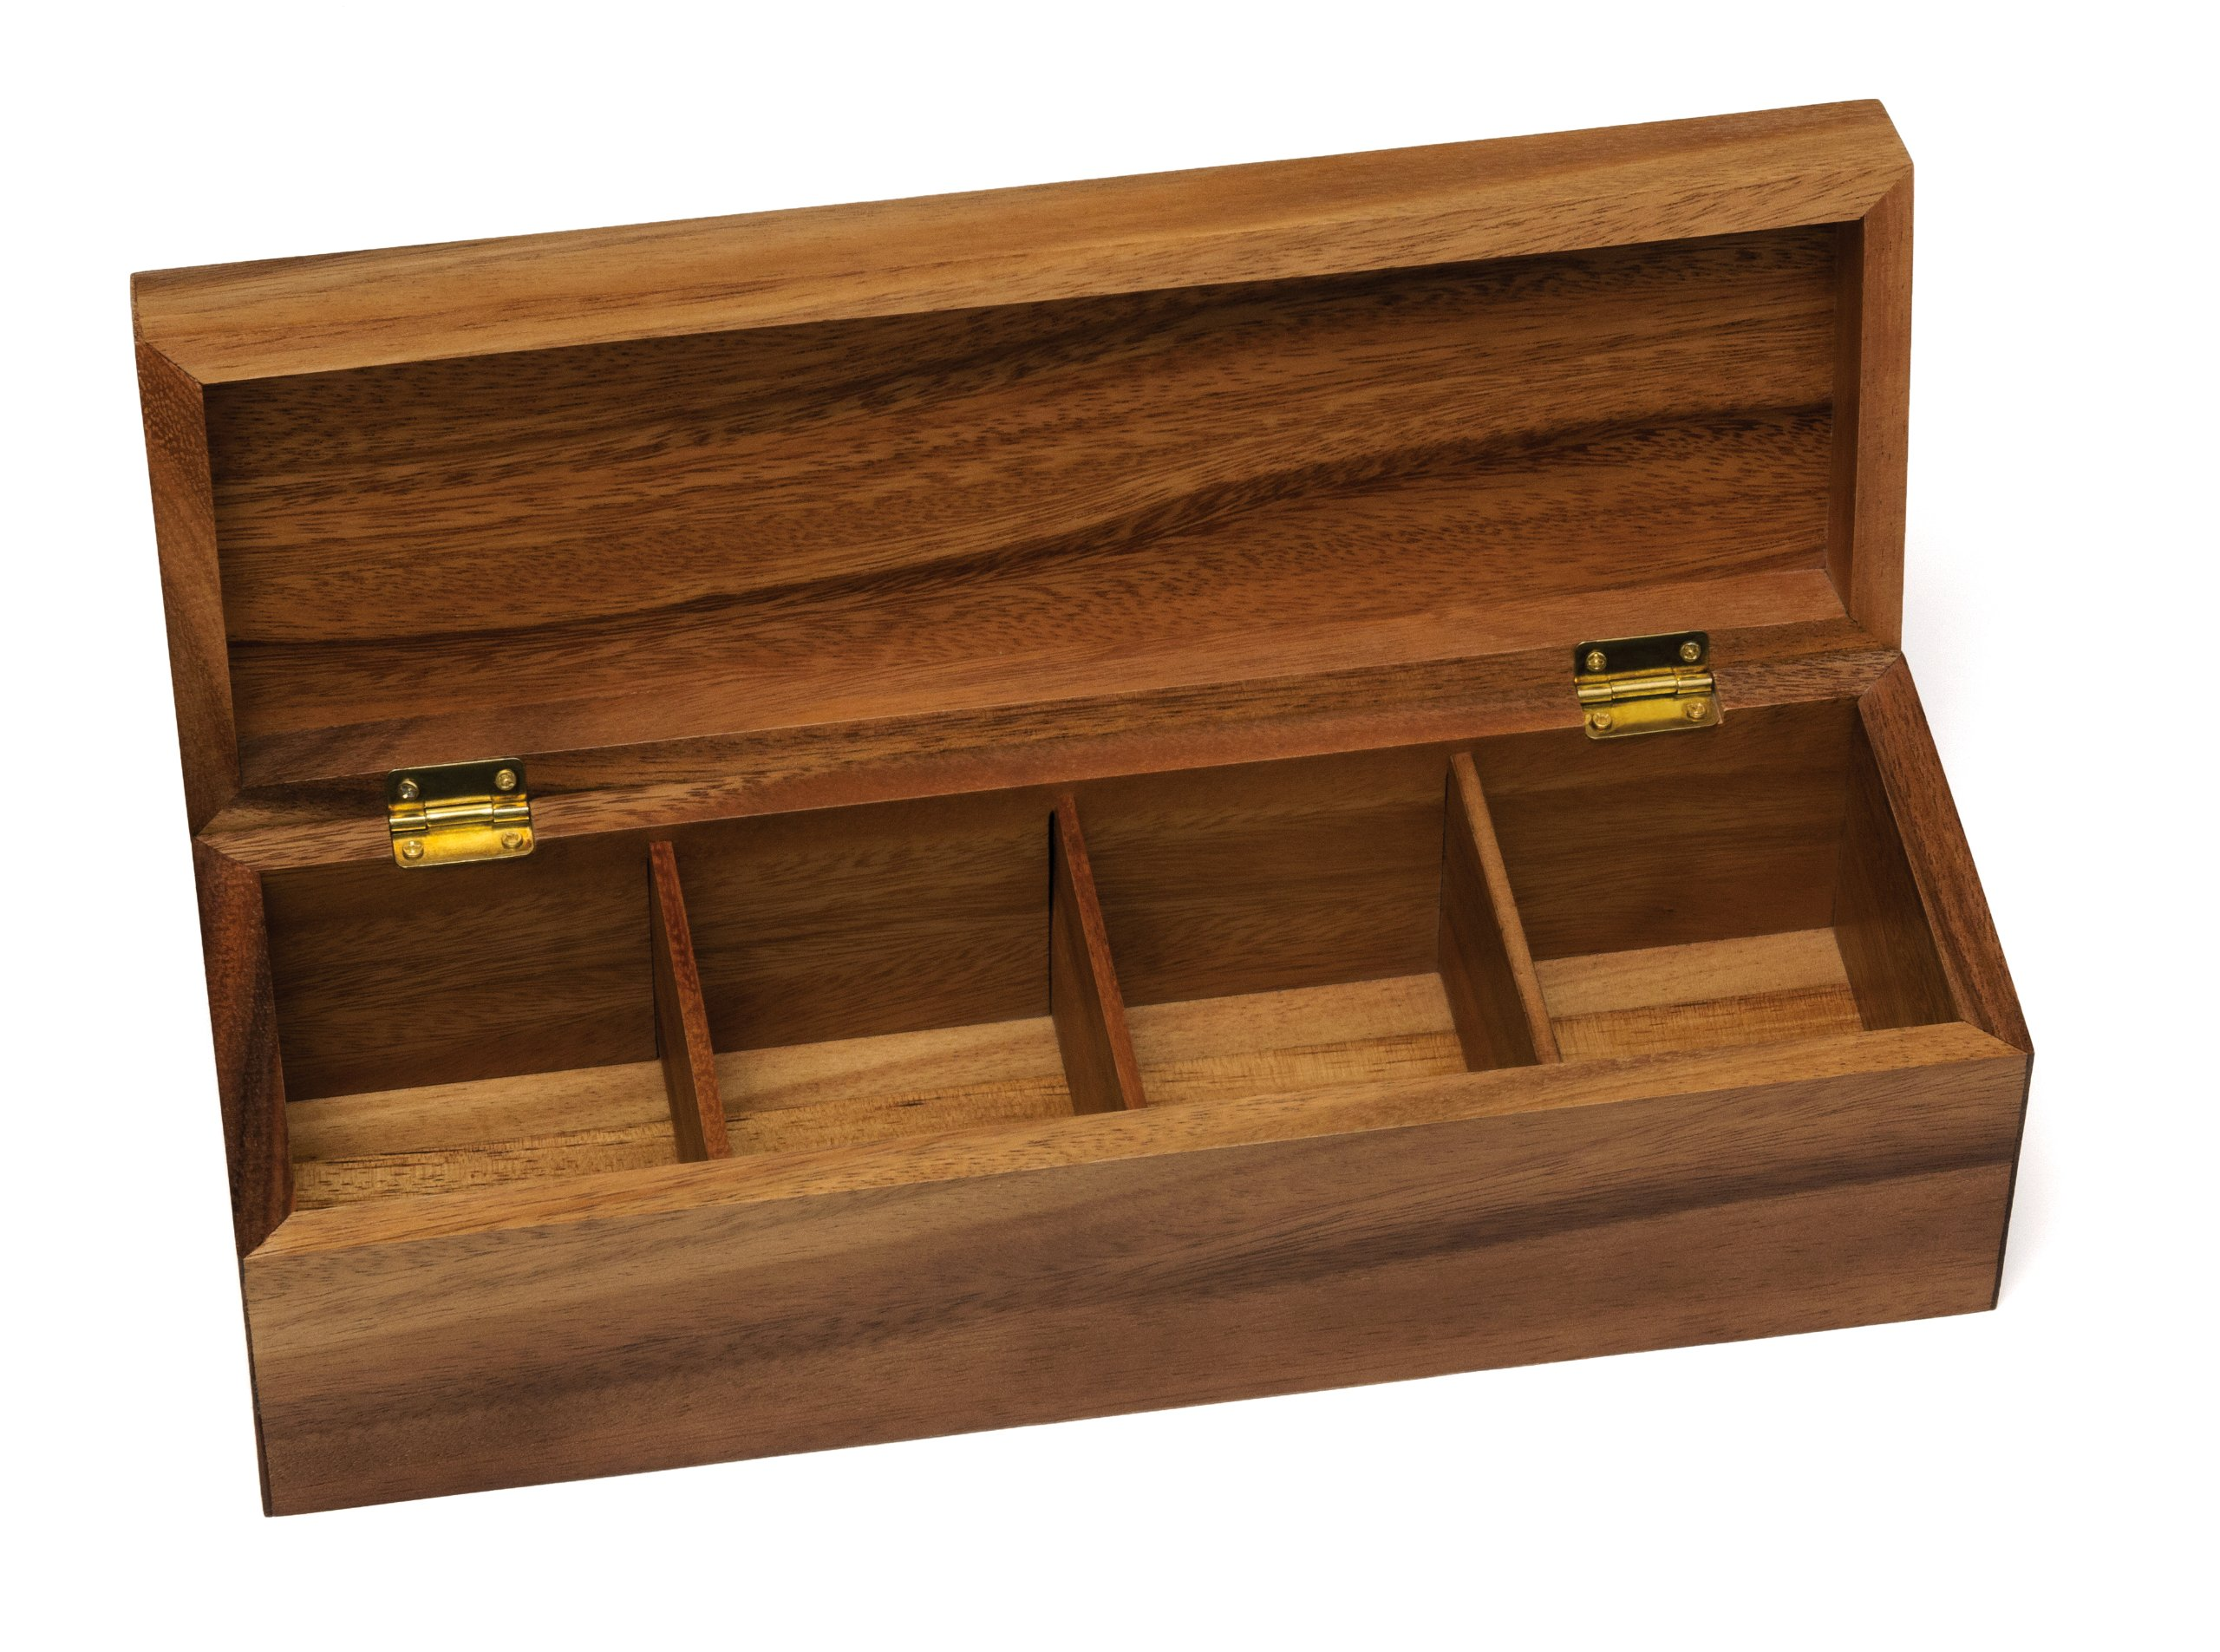 Lipper International 1128 Acacia Wood Tea Box with 4 Sections, 12-1/2'' x 4-1/8'' x 3-7/8''